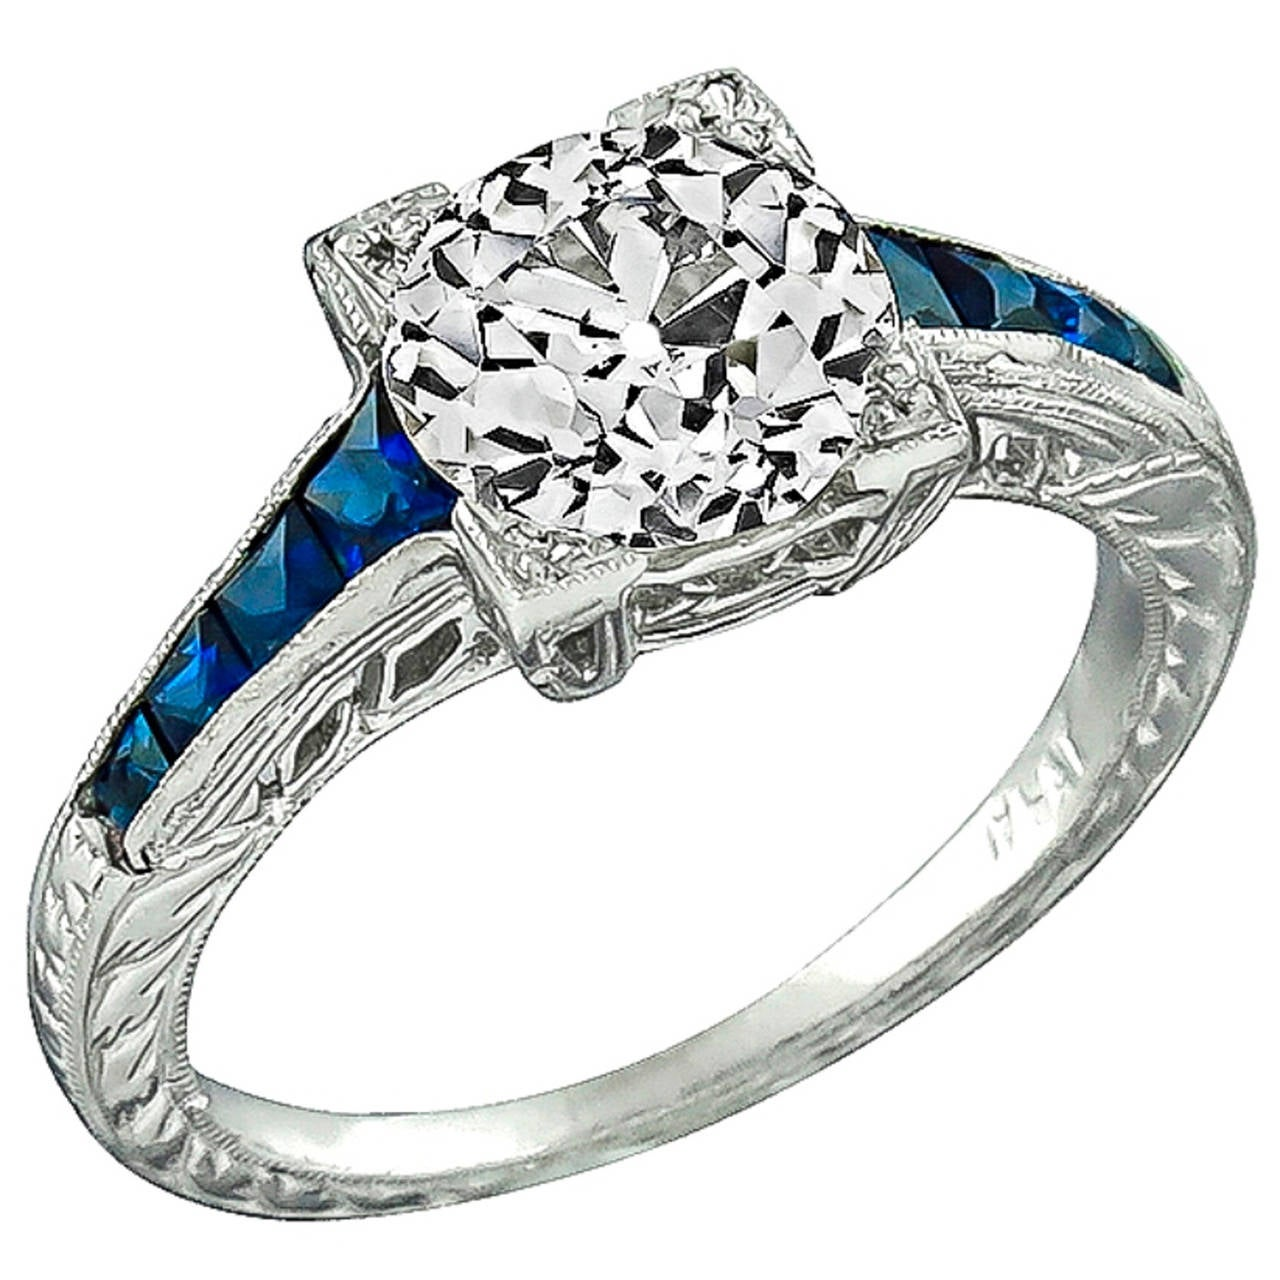 2.01ct. Old European Cut Diamond Sapphire Engagement Ring